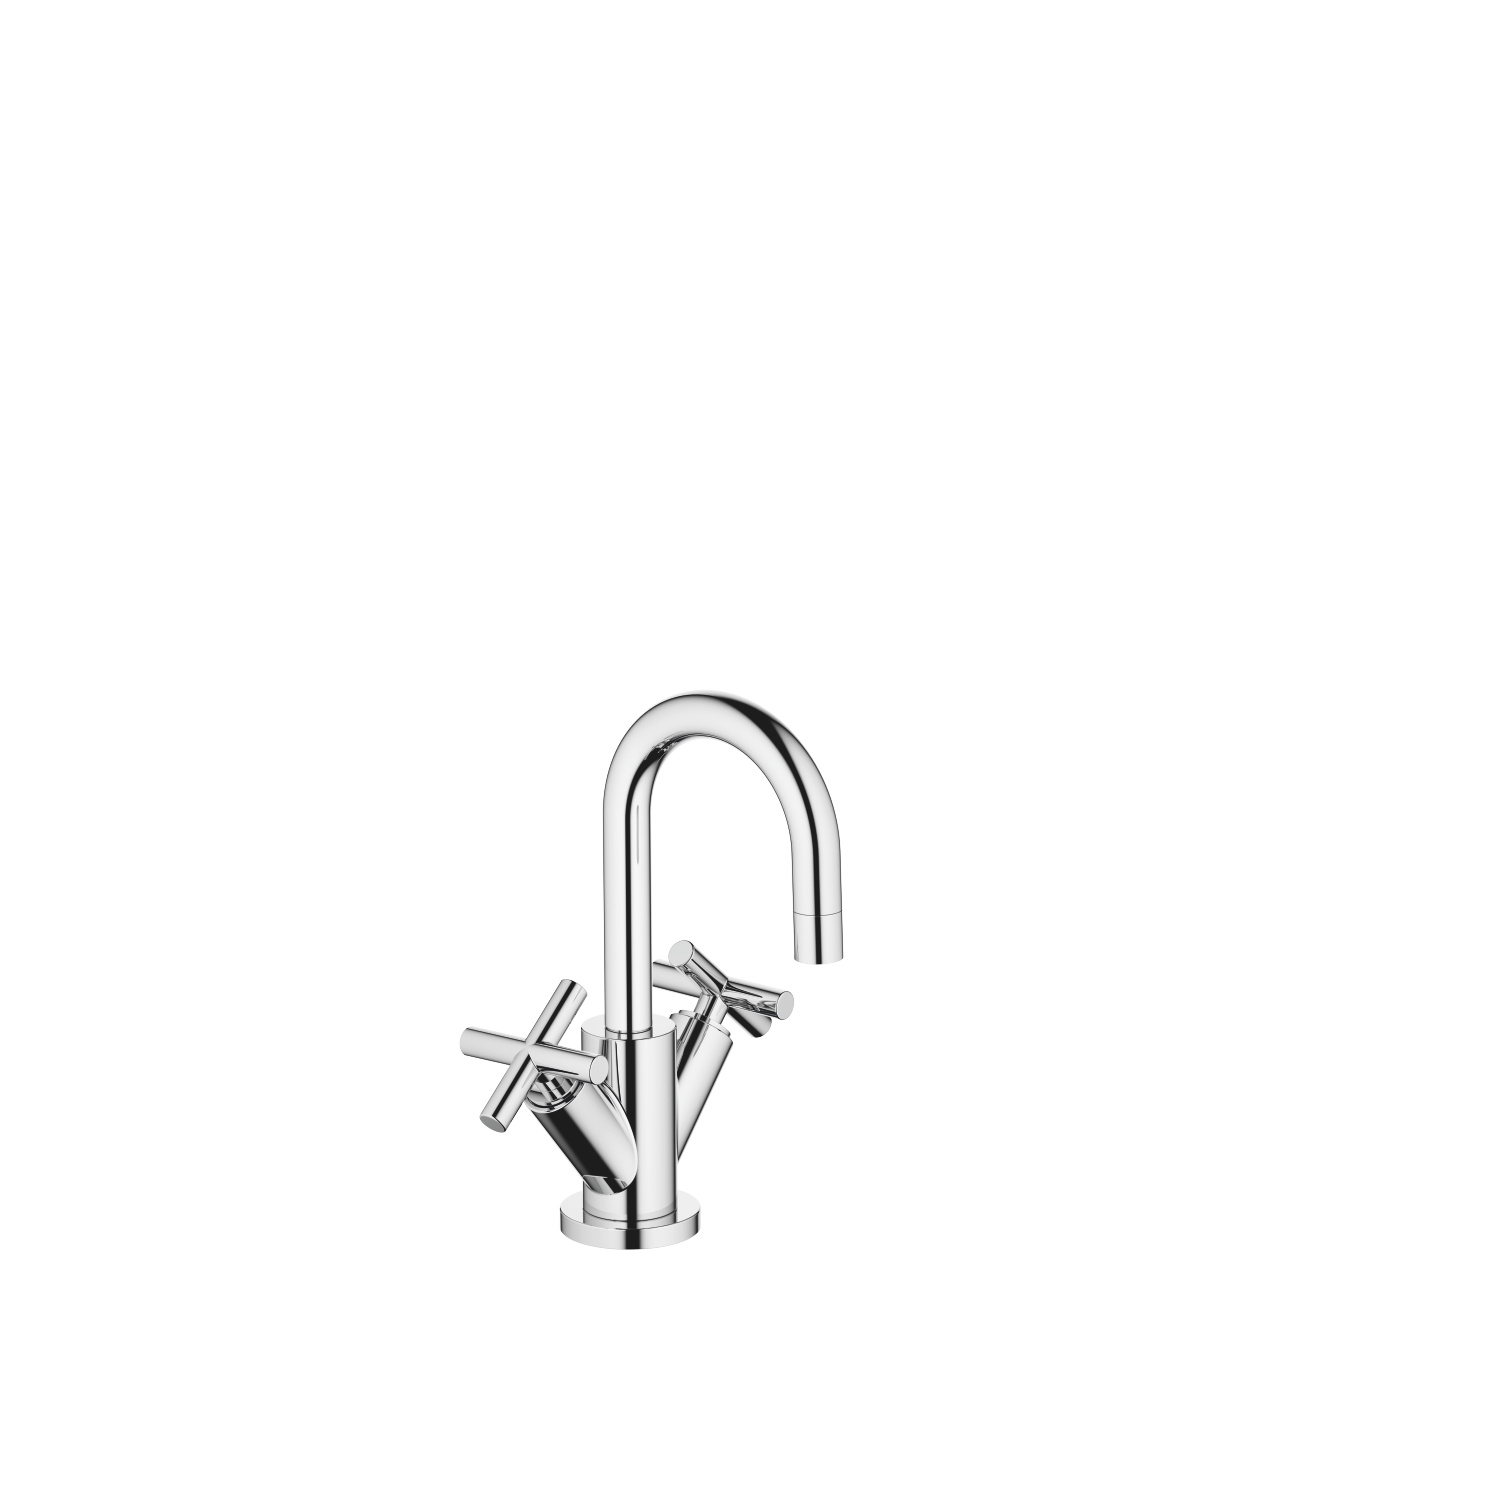 Single-hole basin mixer with pop-up waste - polished chrome